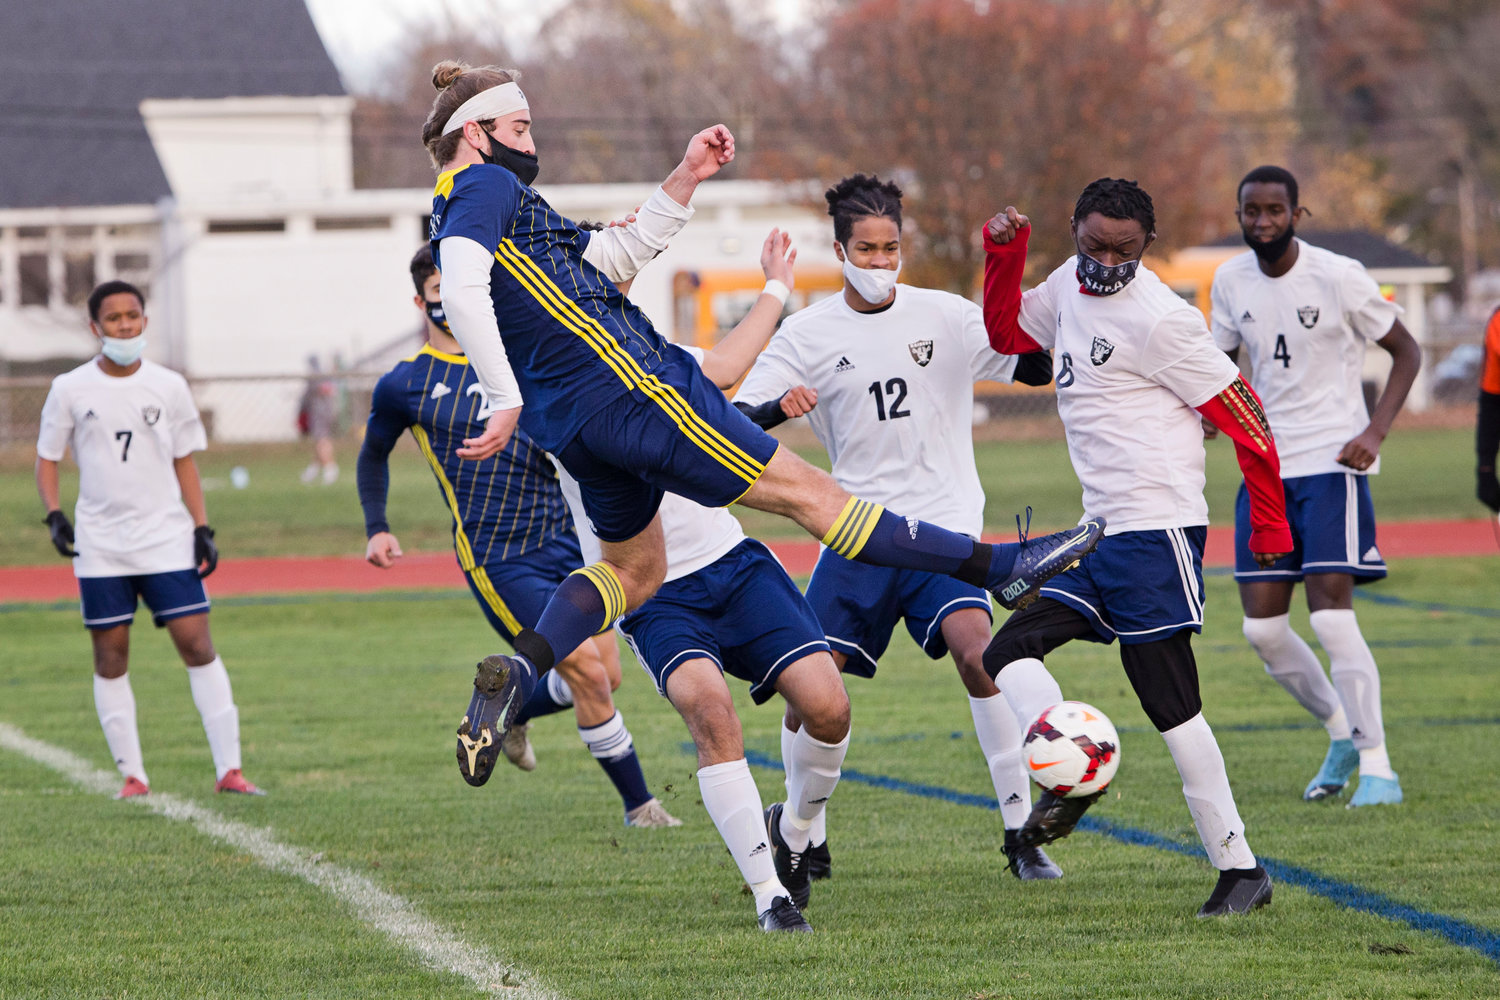 Barrington High School's Jackson Bennett flies through the air to connect with a shot on goal during a game this fall. Jackson was recently selected to the United Soccer Coaches Association's All American team.